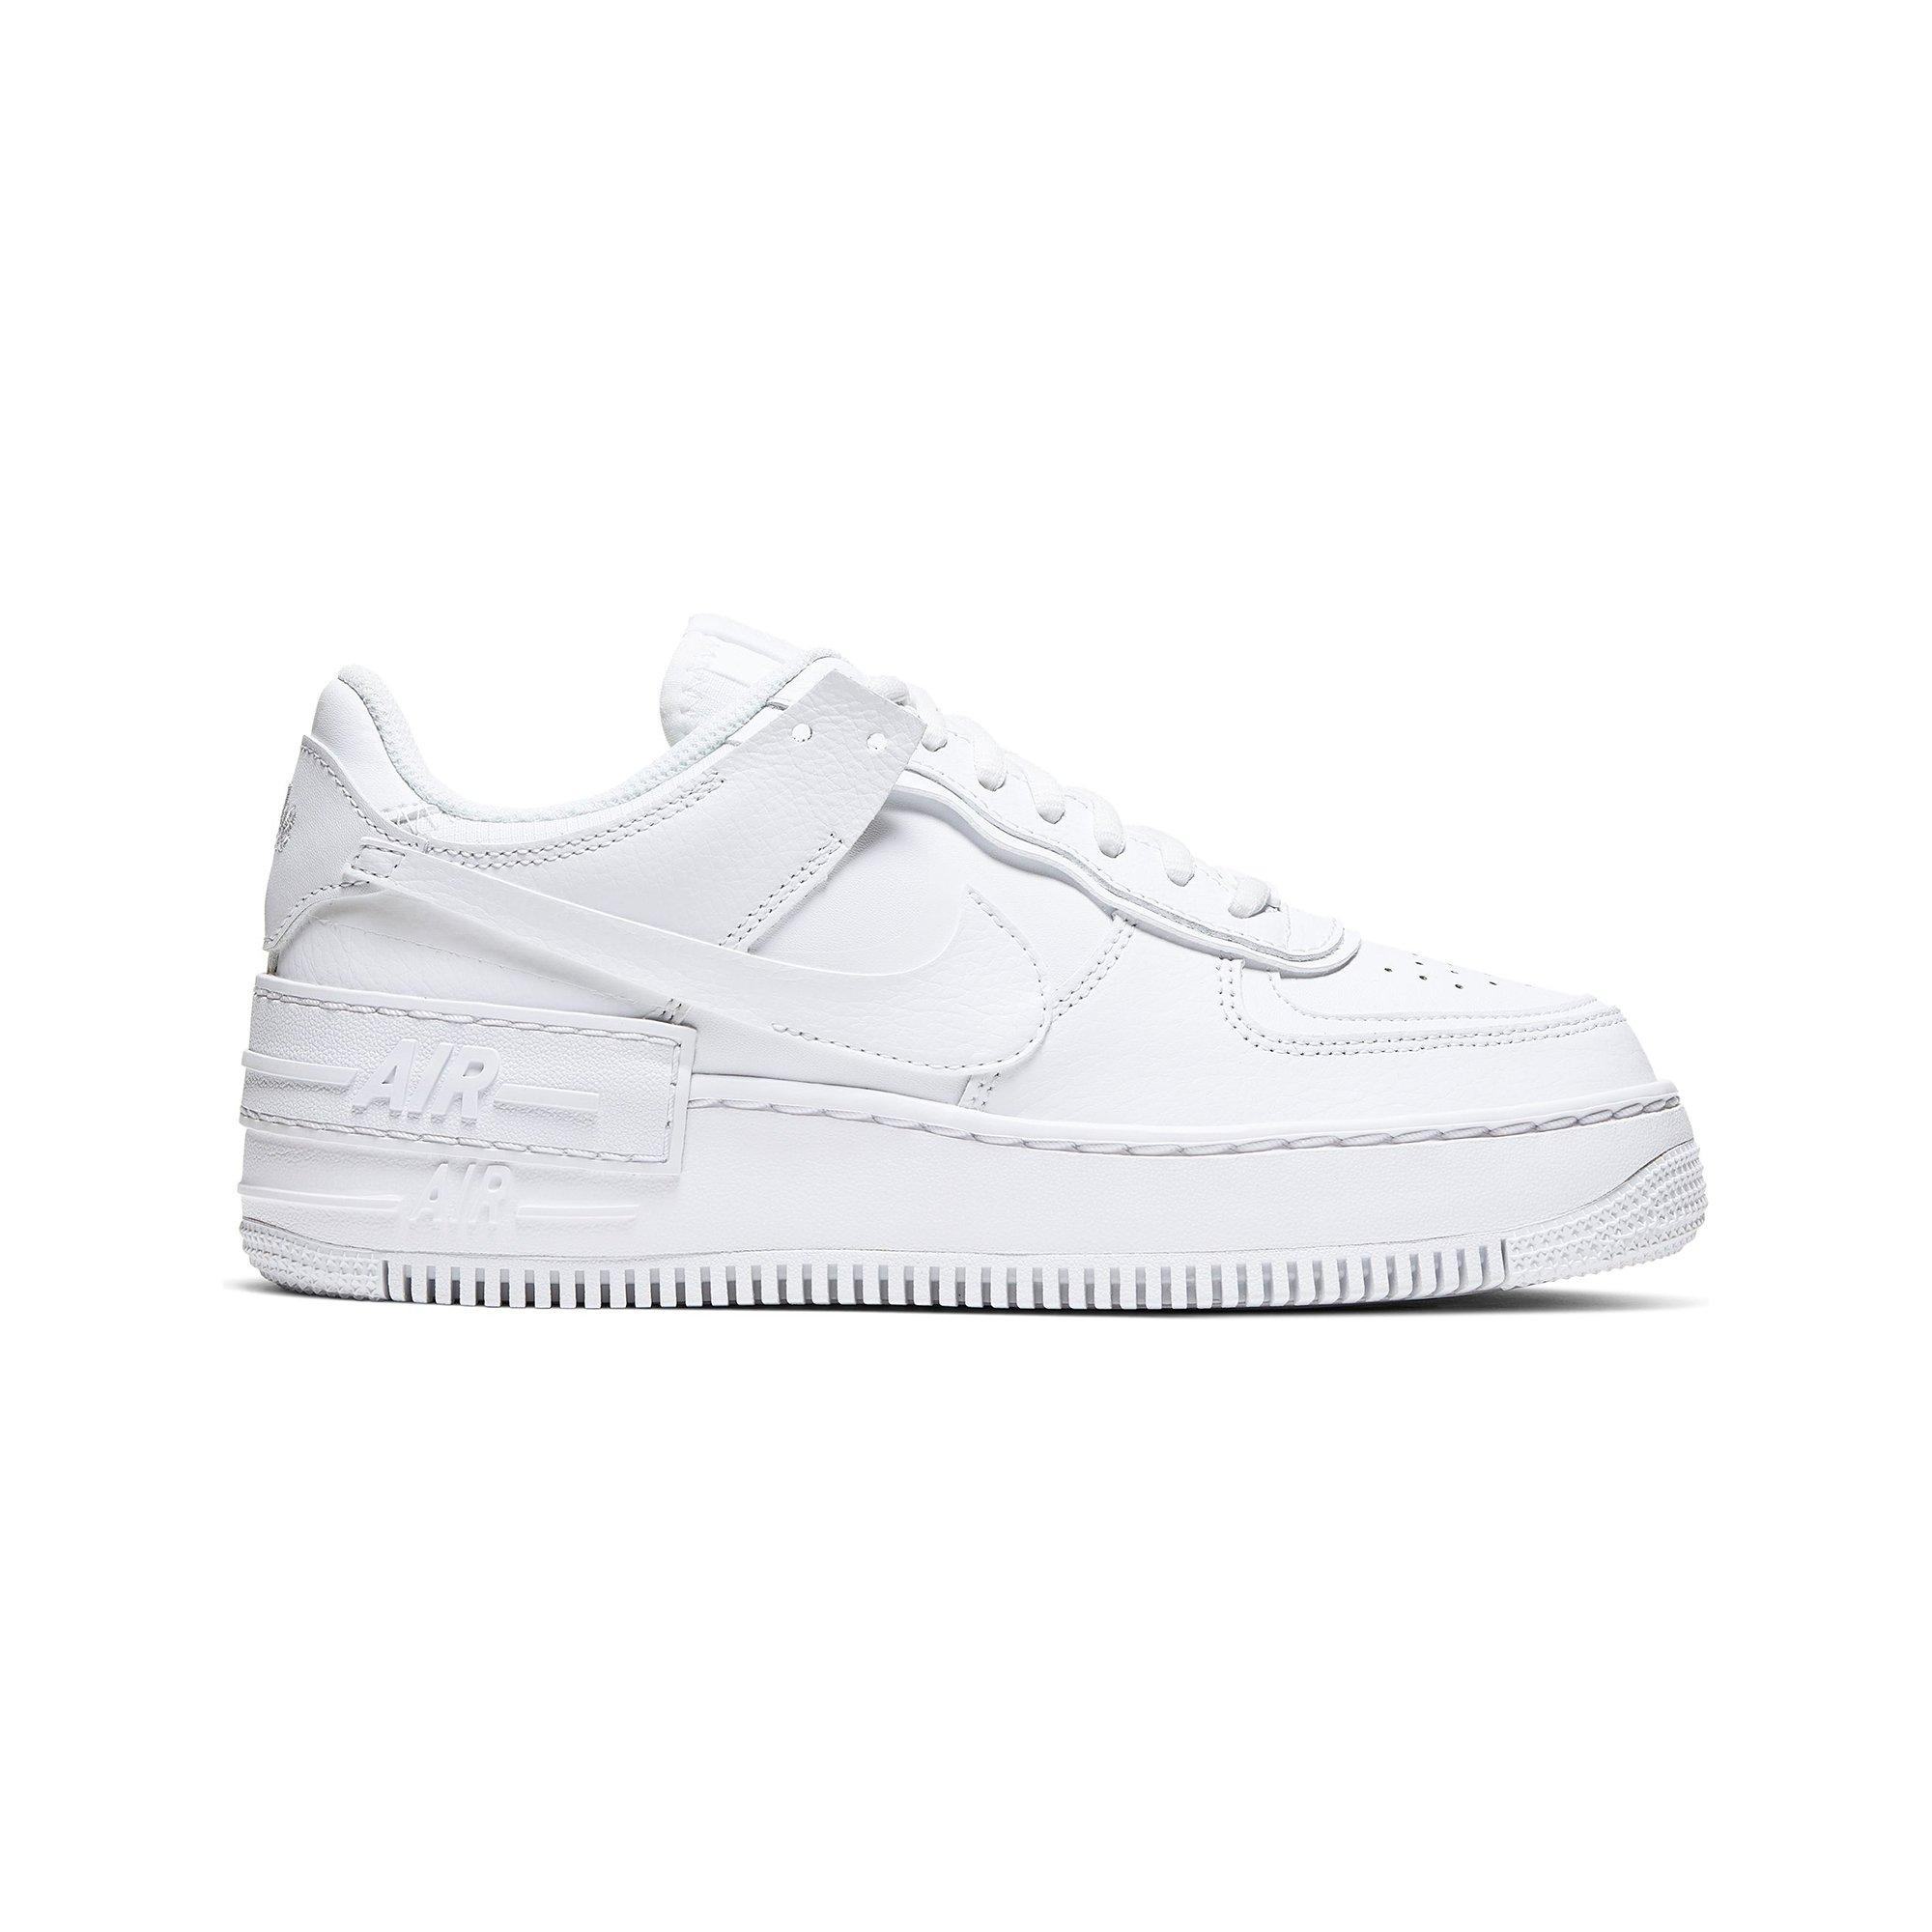 Nike Air Force 1 Shadow White Women S Shoe Hibbett City Gear There's no question about it, women's versions of the nike air force 1s have become a. nike air force 1 shadow white women s shoe